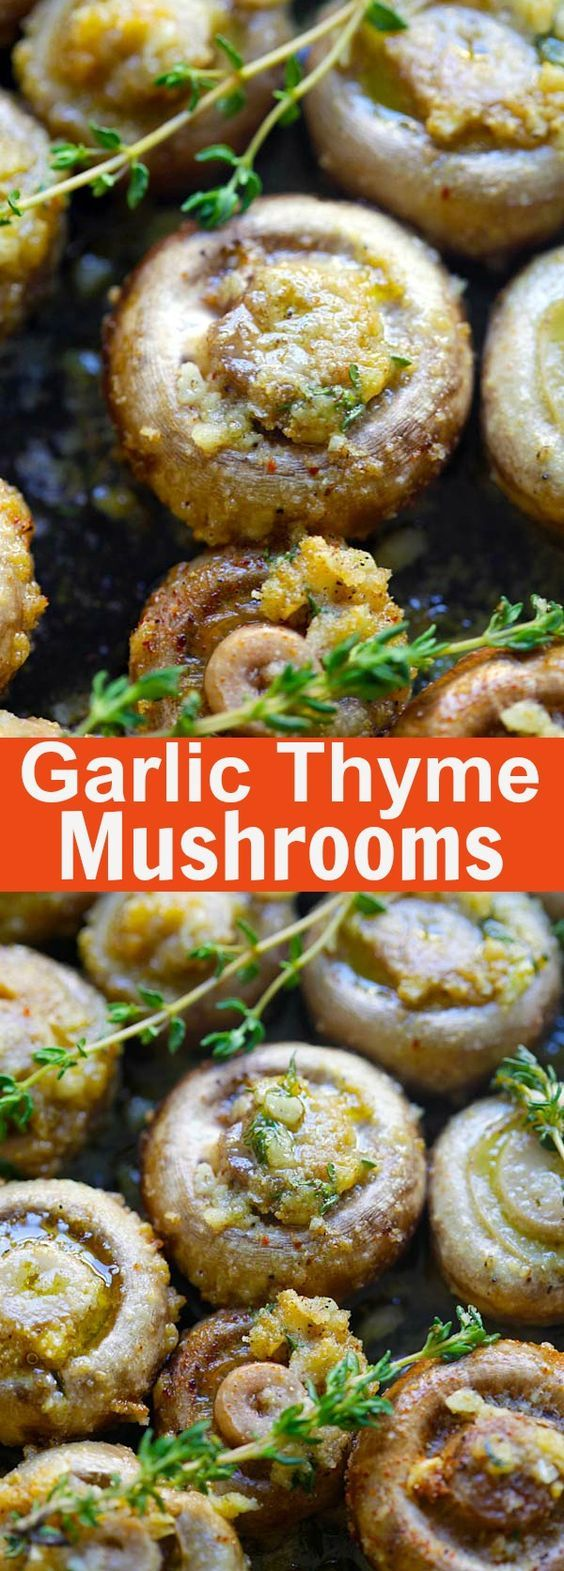 Buttery roasted mushrooms with garlic, thyme and breadcrumbs. A healthy and easy side dish   rasamalaysia.com